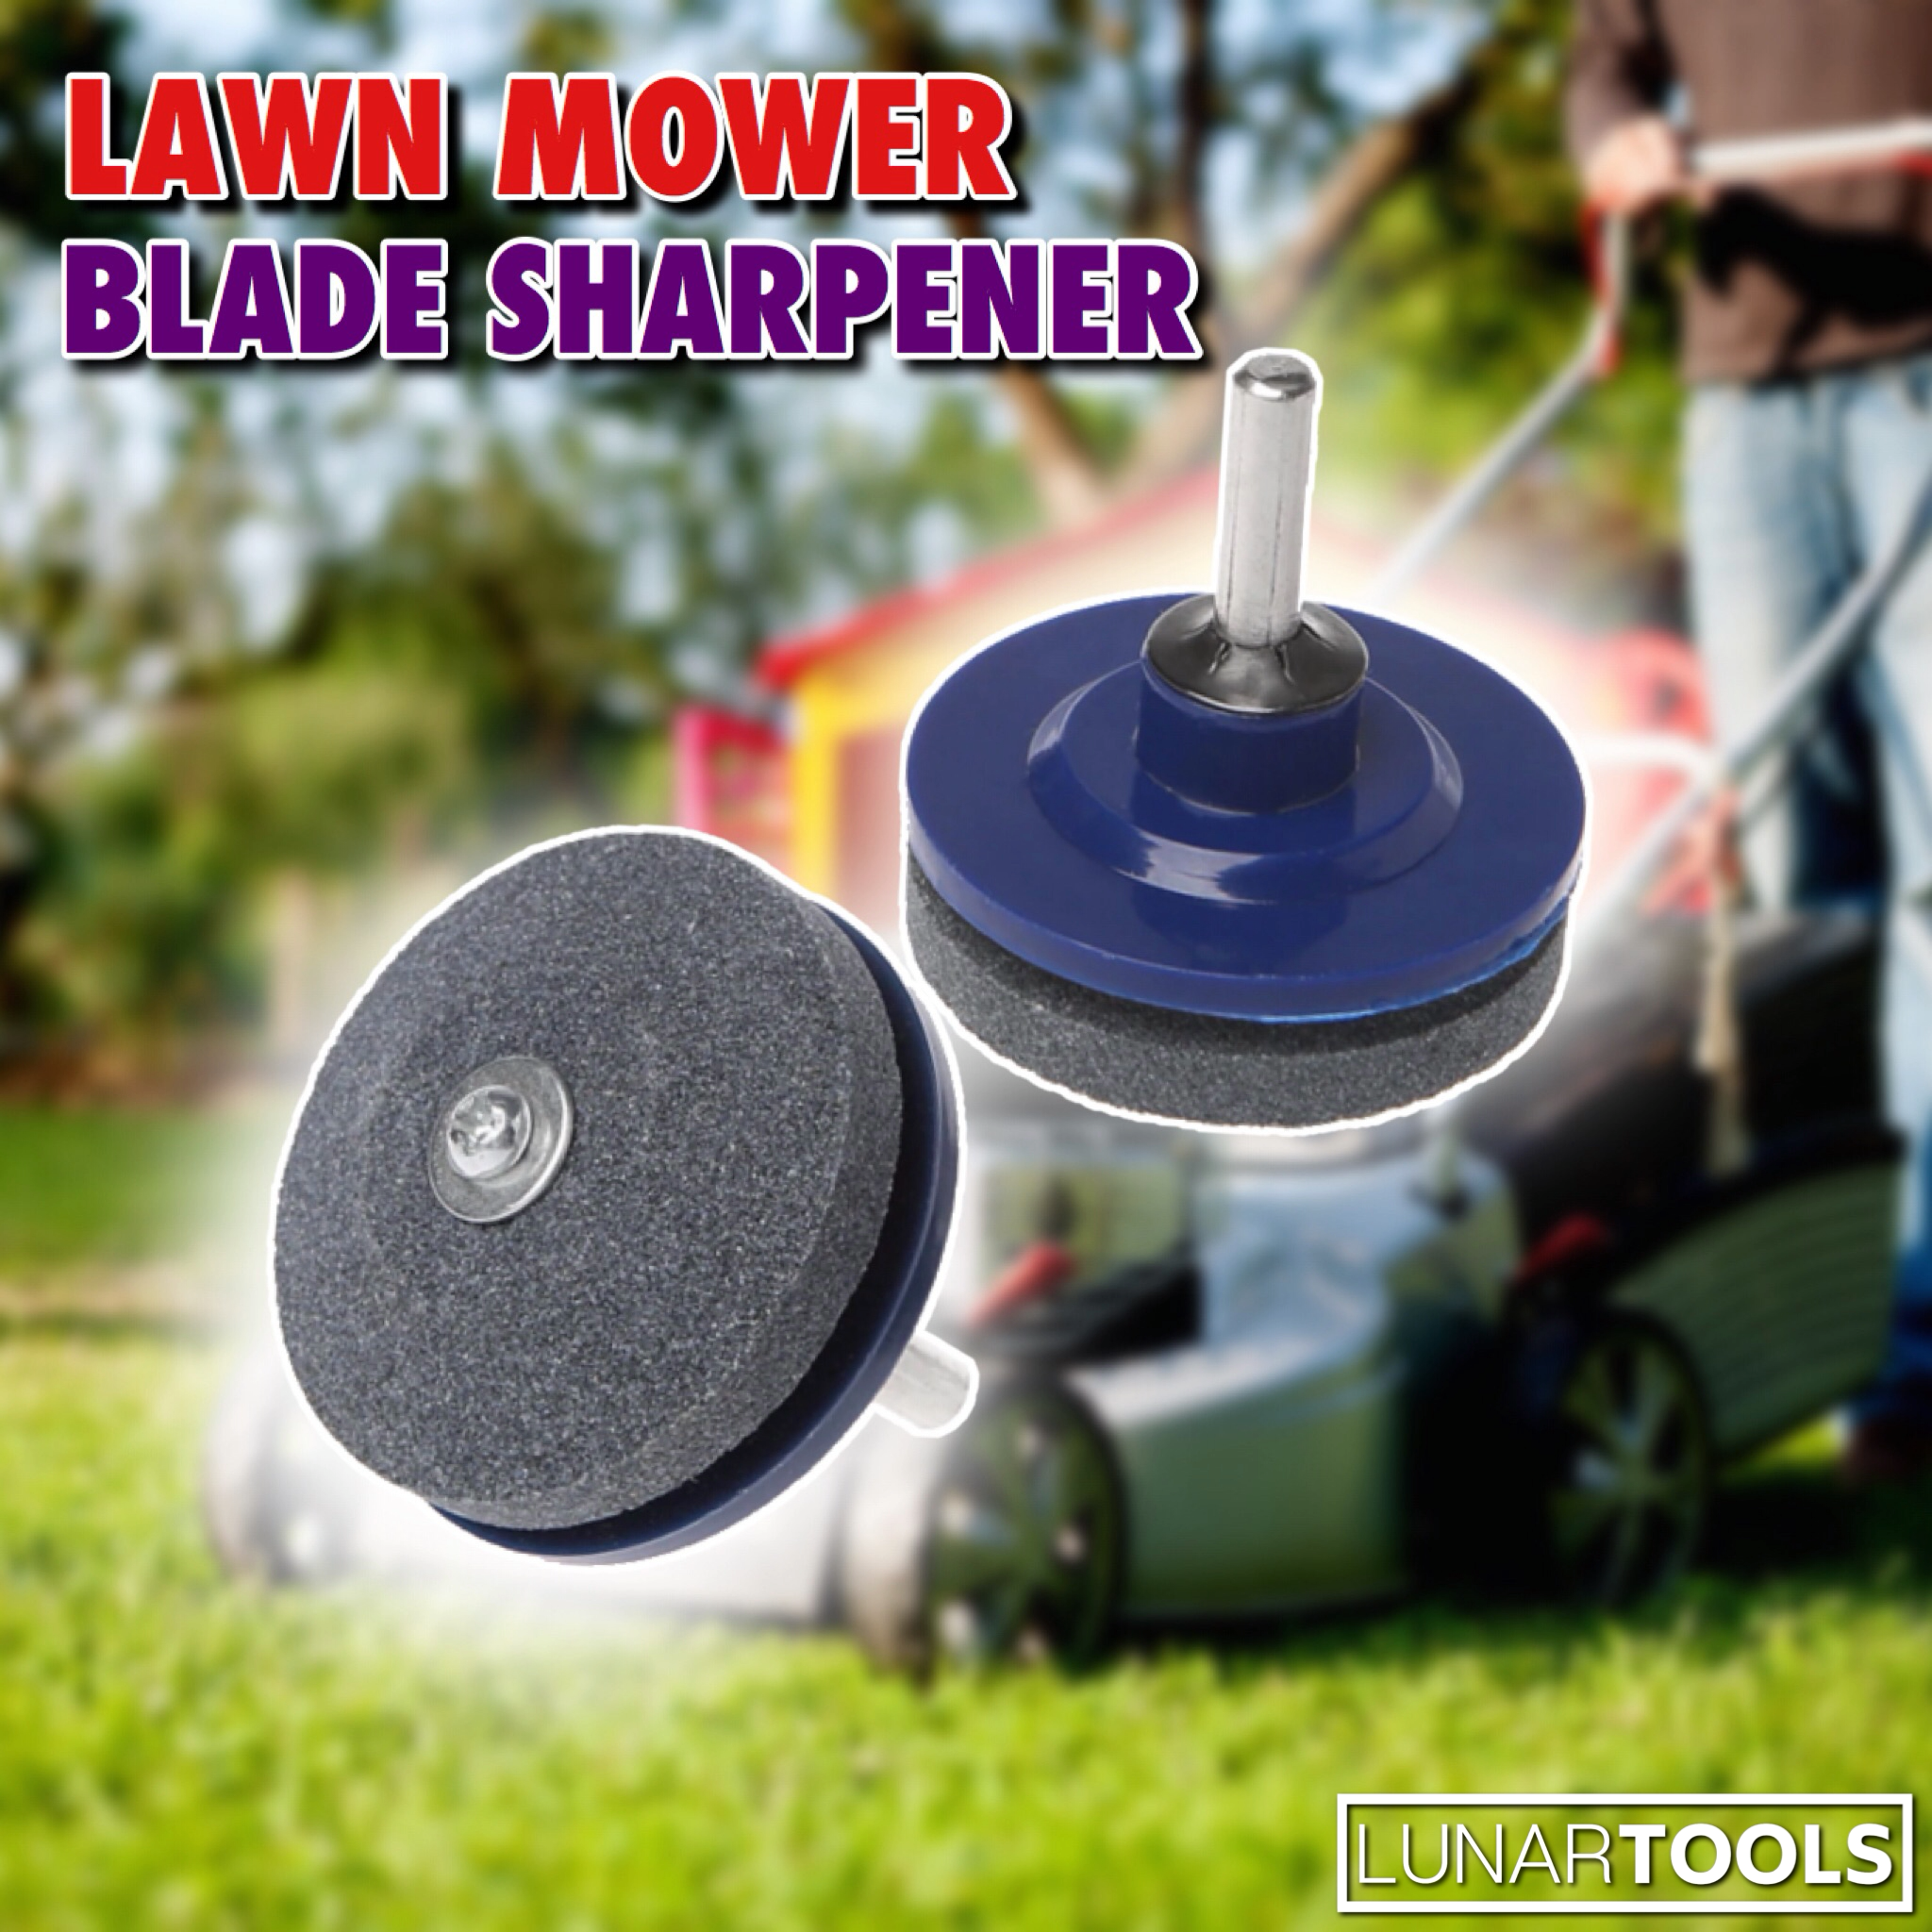 Lawn Mower Blade Sharpener(2 PACK)